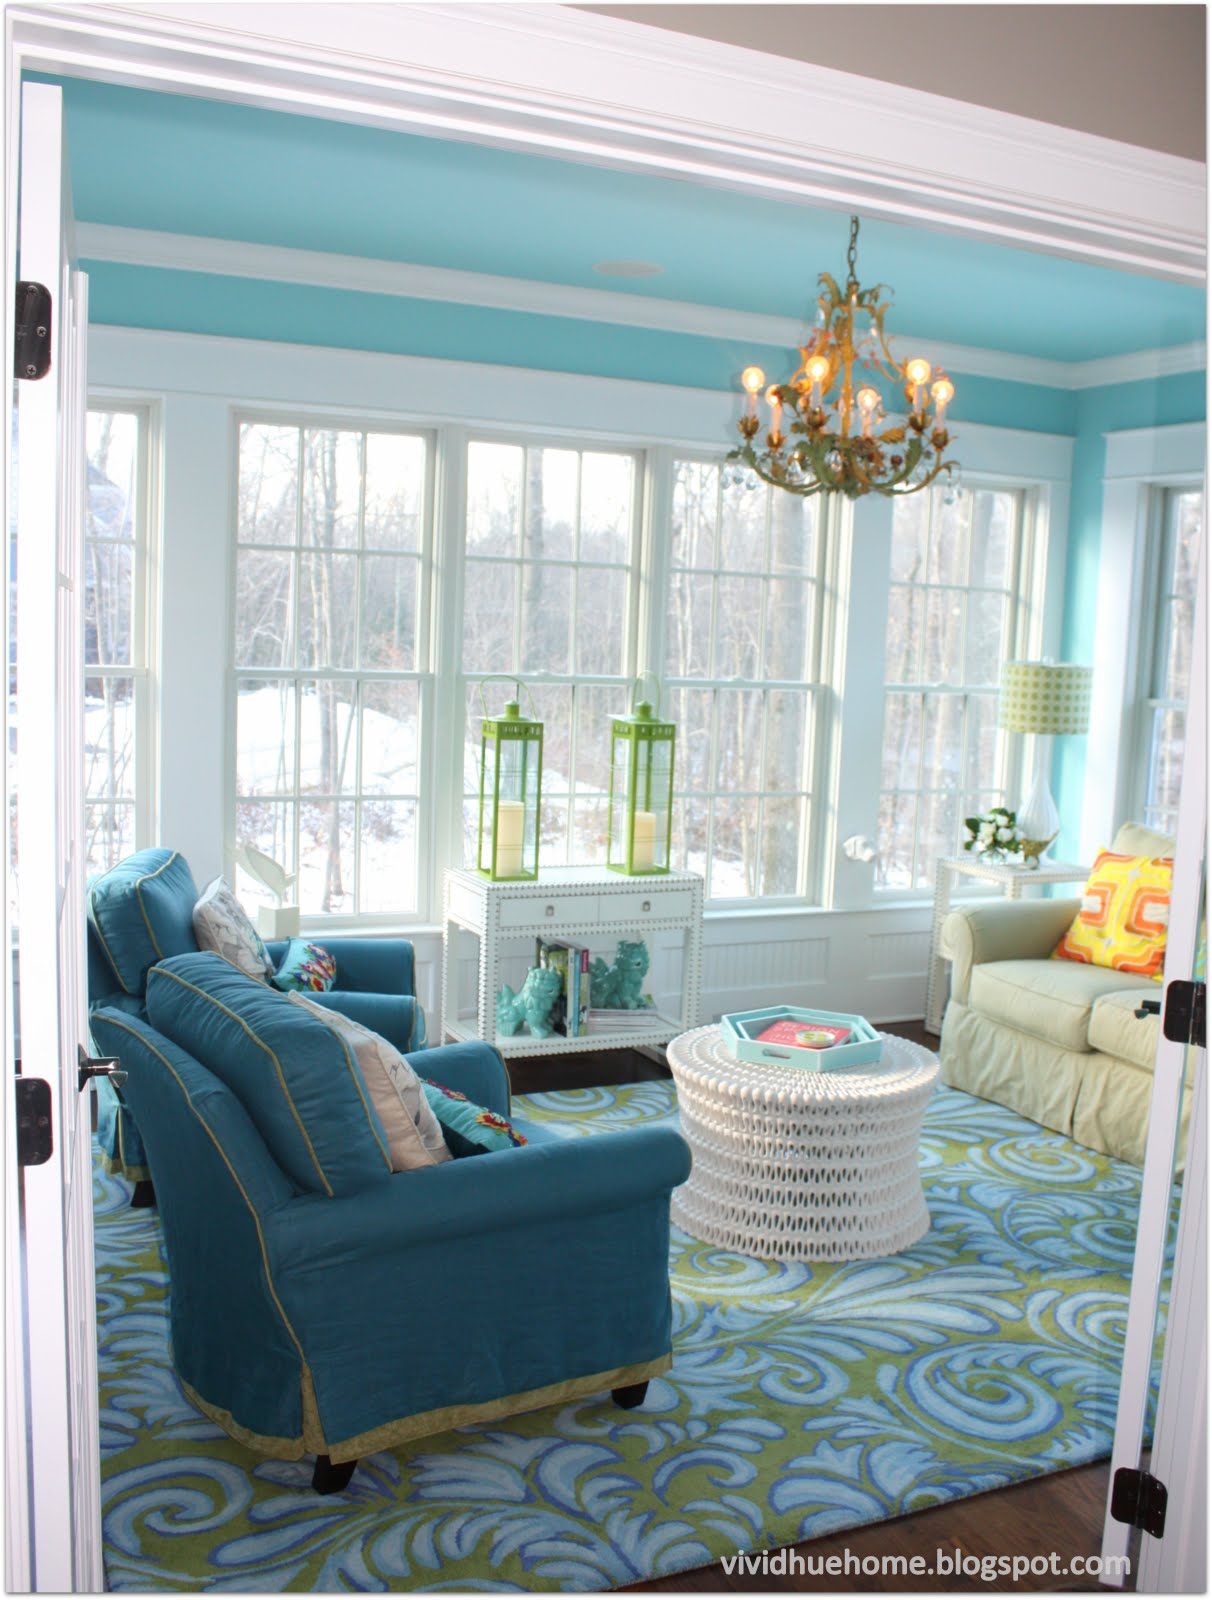 Vivid hue home house tour sun room for House sunroom